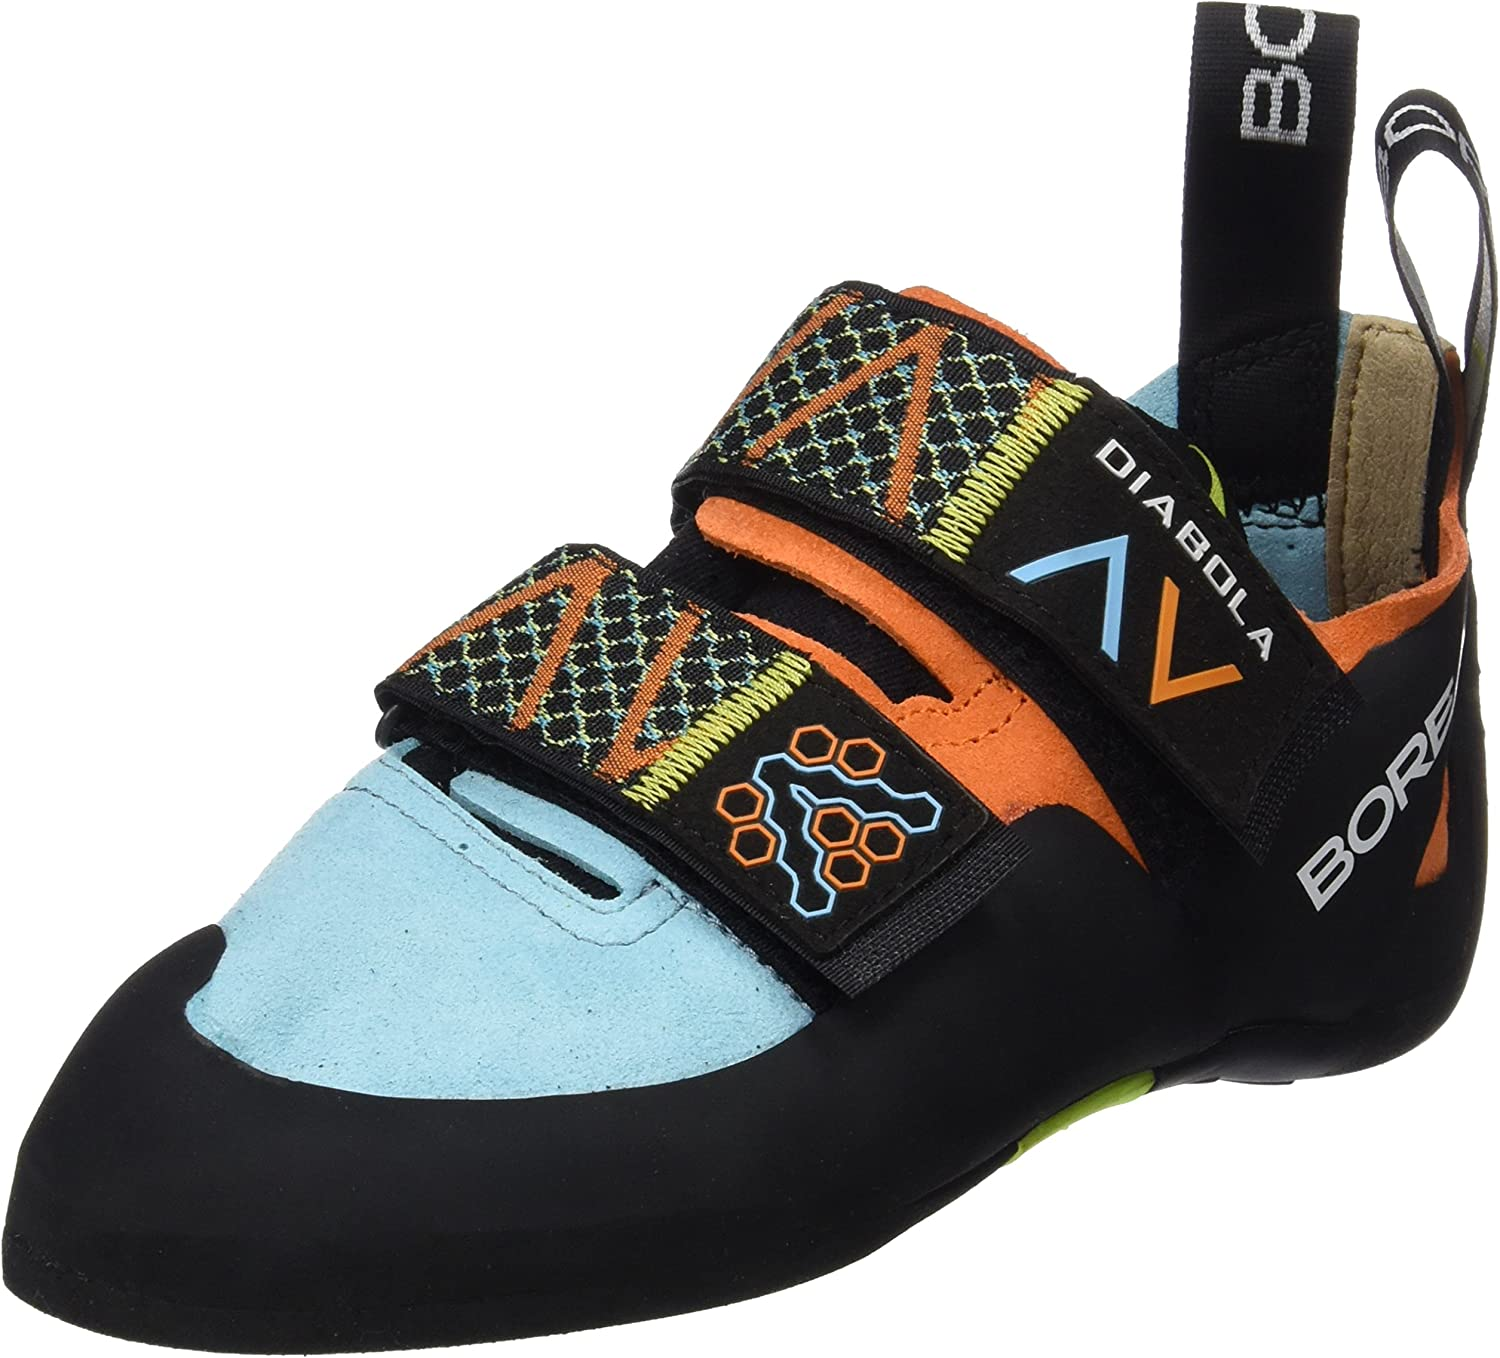 Amazon.com: Boreal Diabola Climbing Shoes - Womens: Sports ...